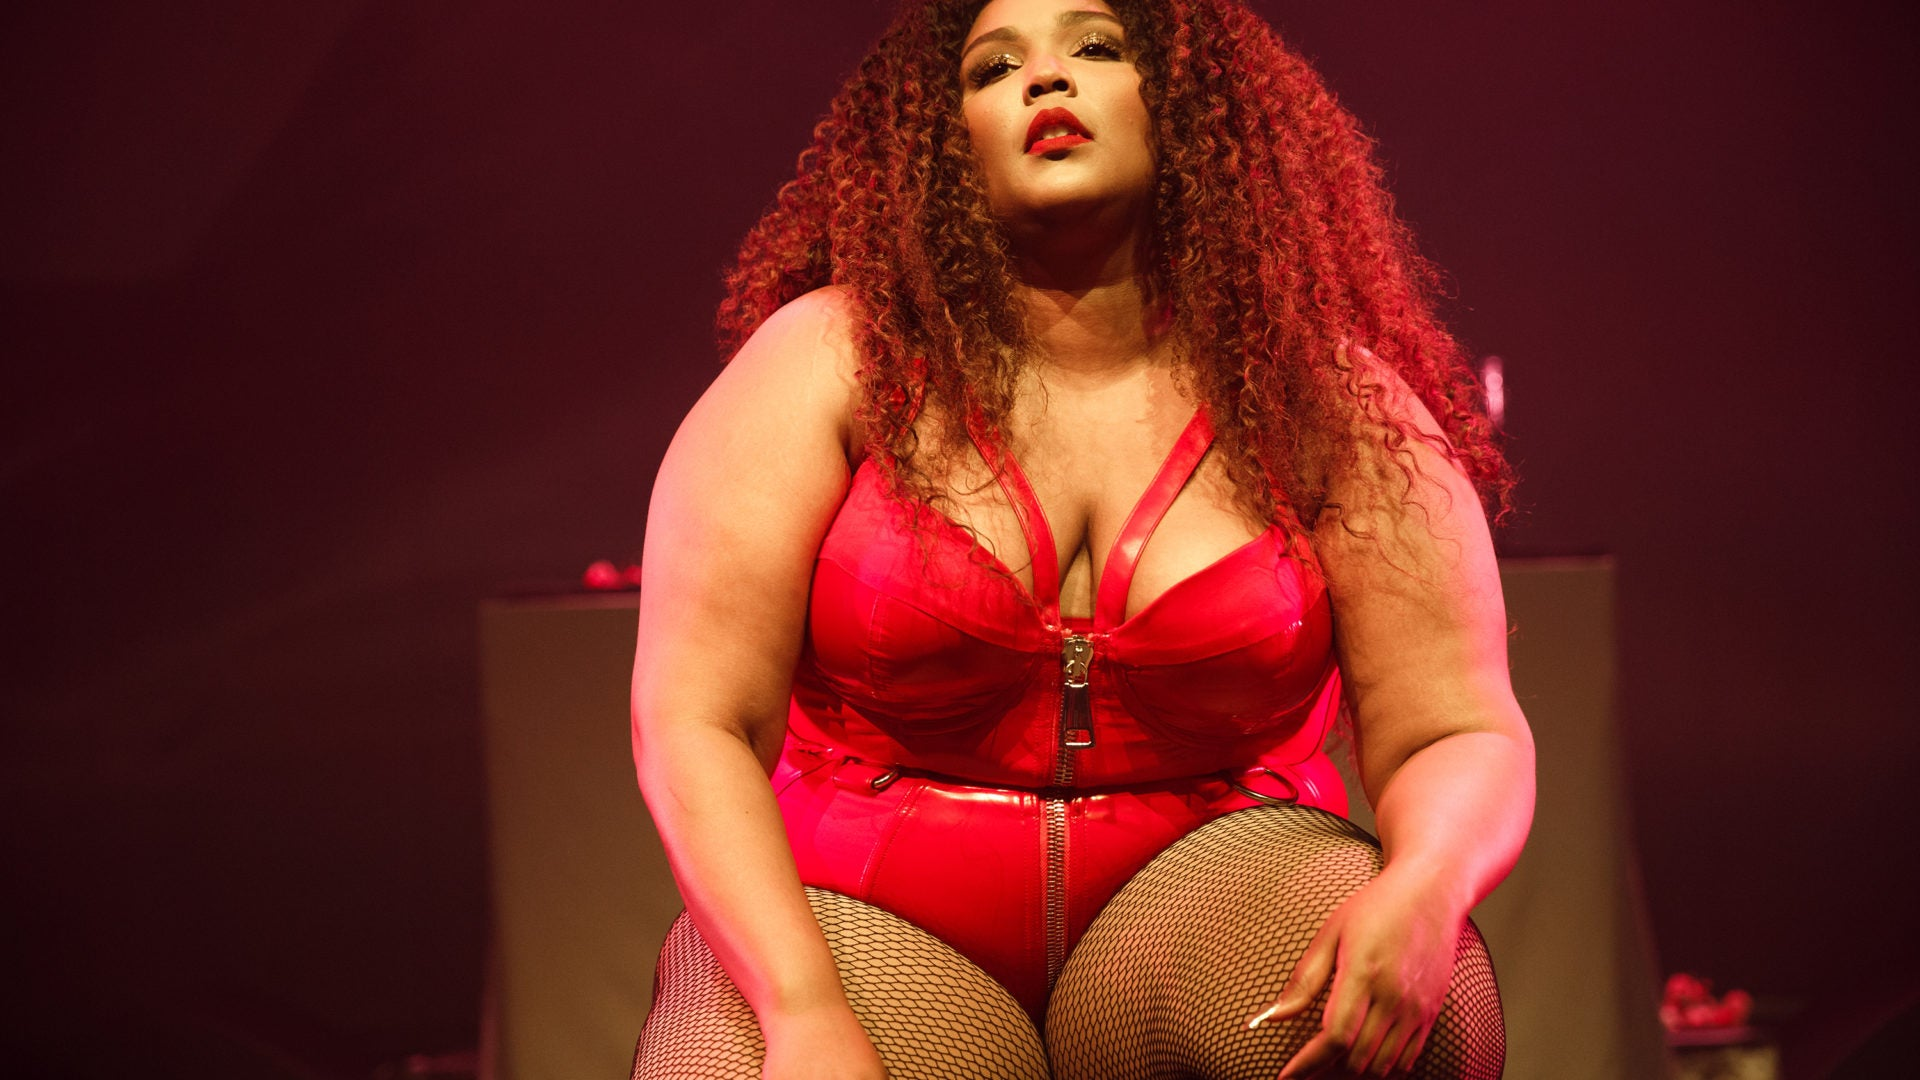 Lizzo Reveals Her Struggles With Depression In An Honest Instagram Post